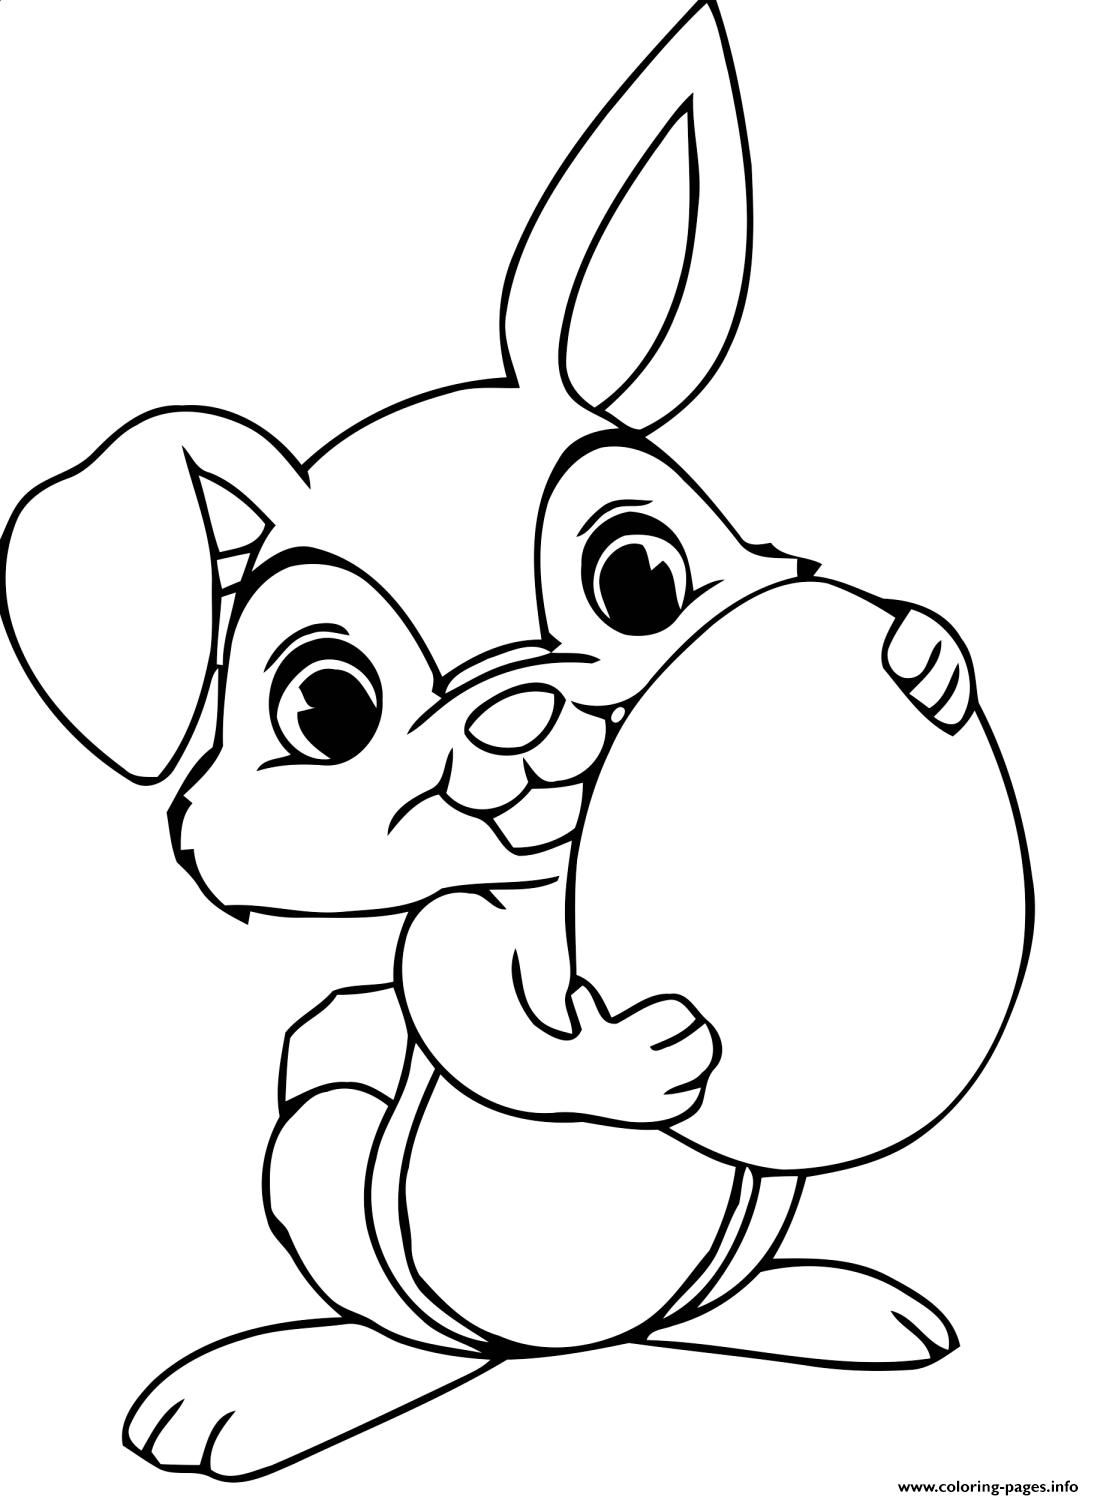 Easter Bunny Maternelle coloring pages